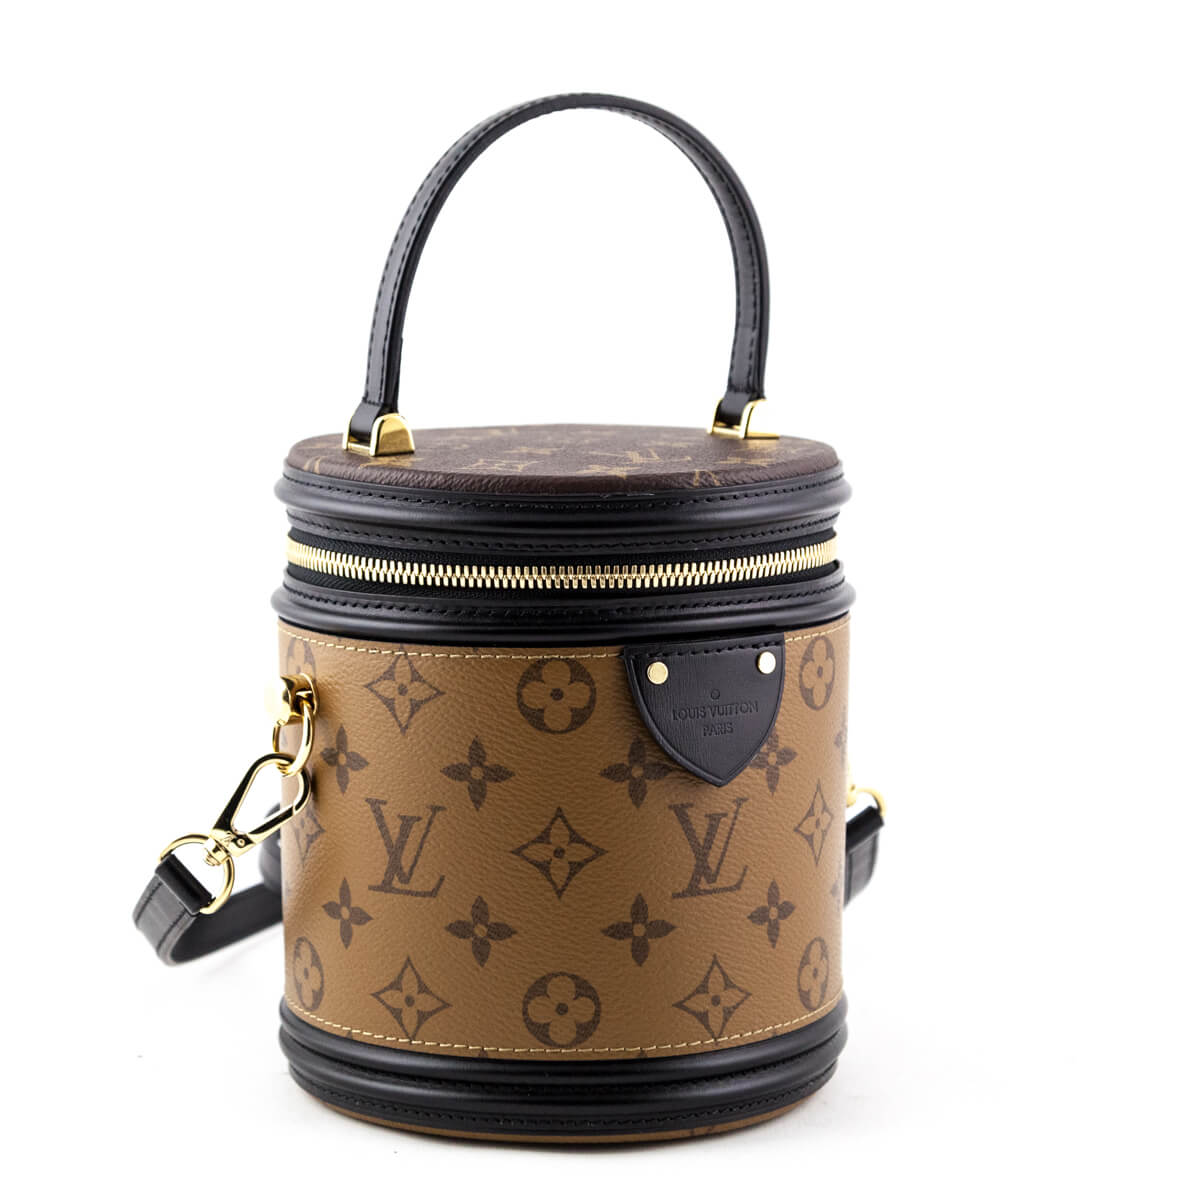 b793ce982ca2 ... Louis Vuitton Monogram Reverse Cannes Top Handle - LOVE that BAG -  Preowned Authentic Designer Handbags ...